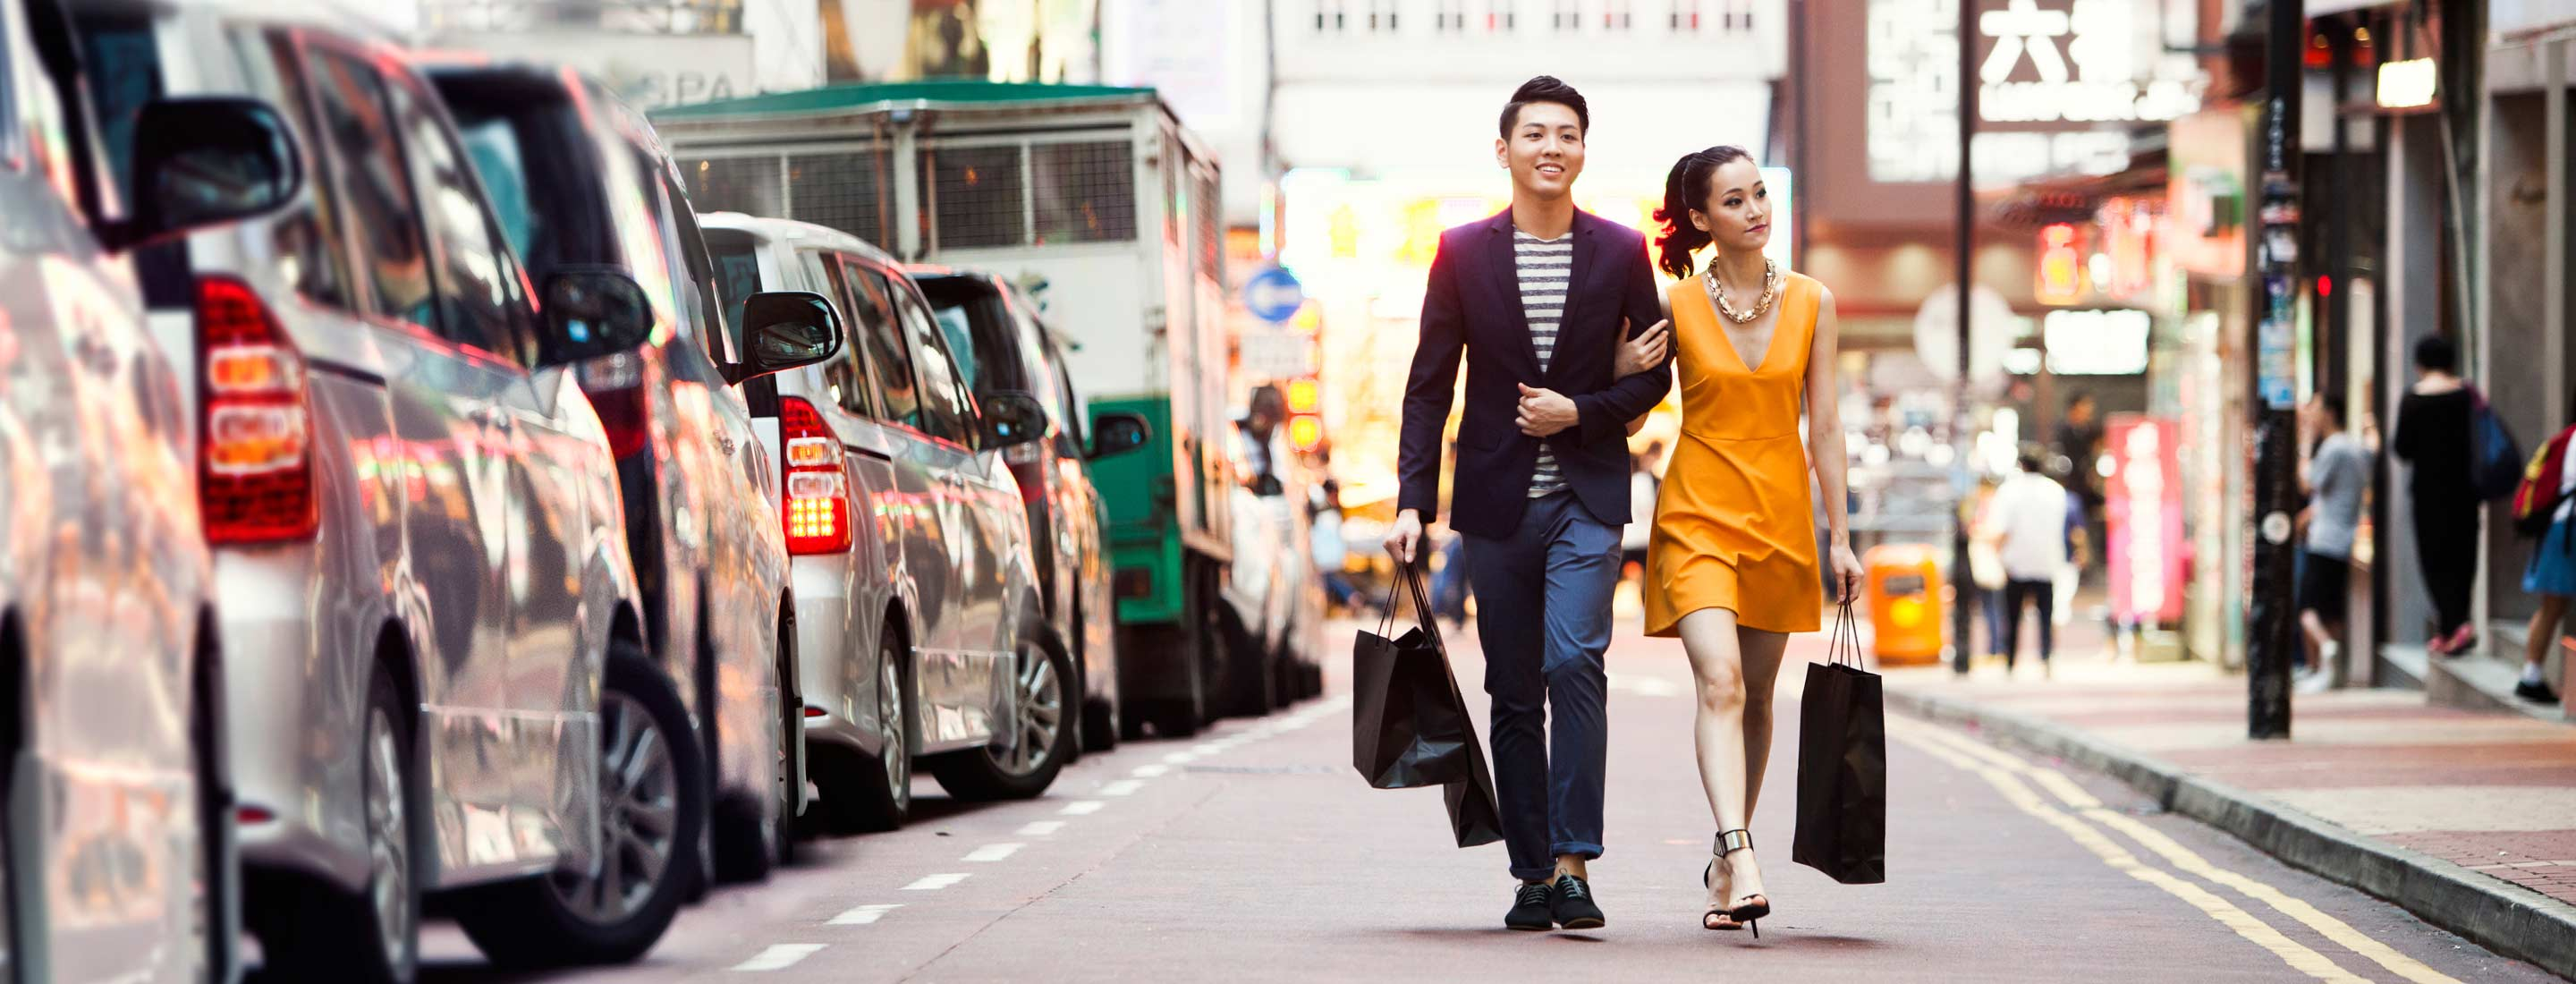 Two people walking down street in Asia